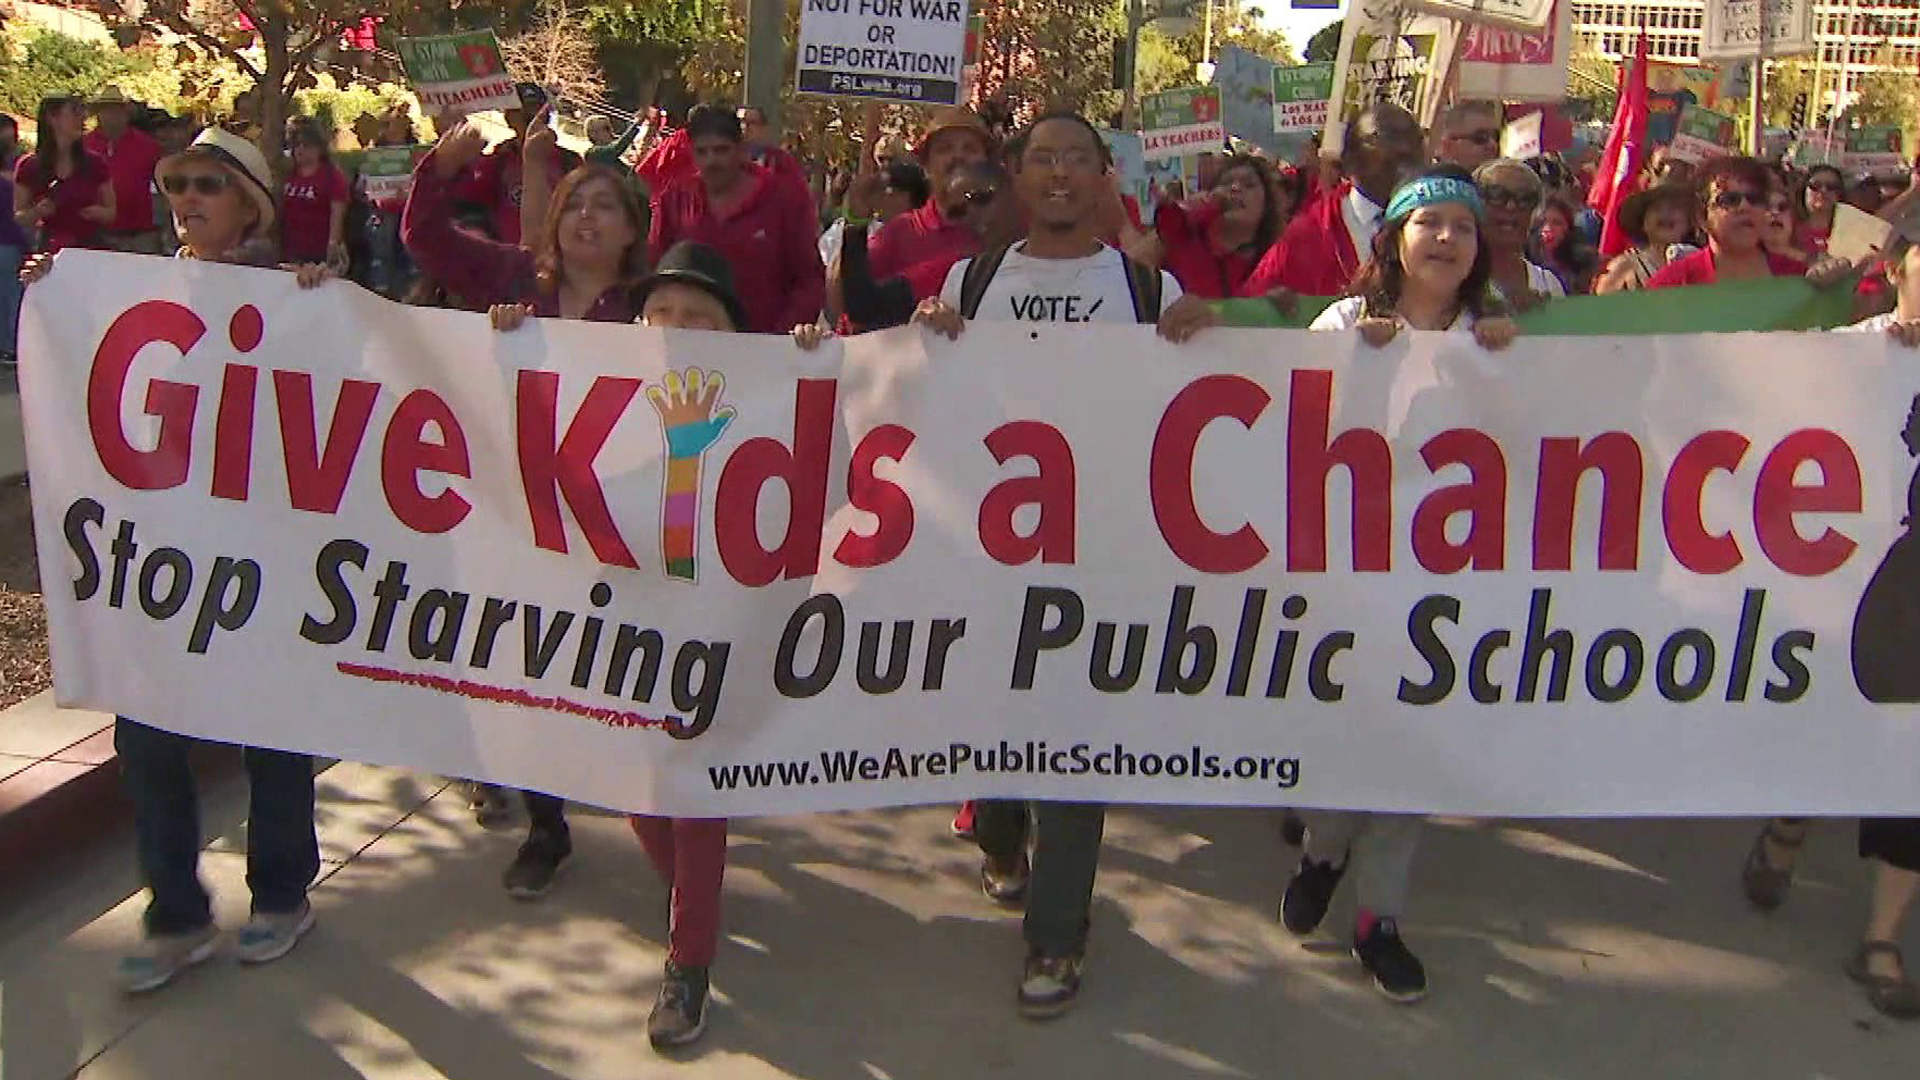 Protesters are seen rallying in support of higher wages for teachers in Los Angeles on Dec. 16, 2018. (Credit: KTLA)